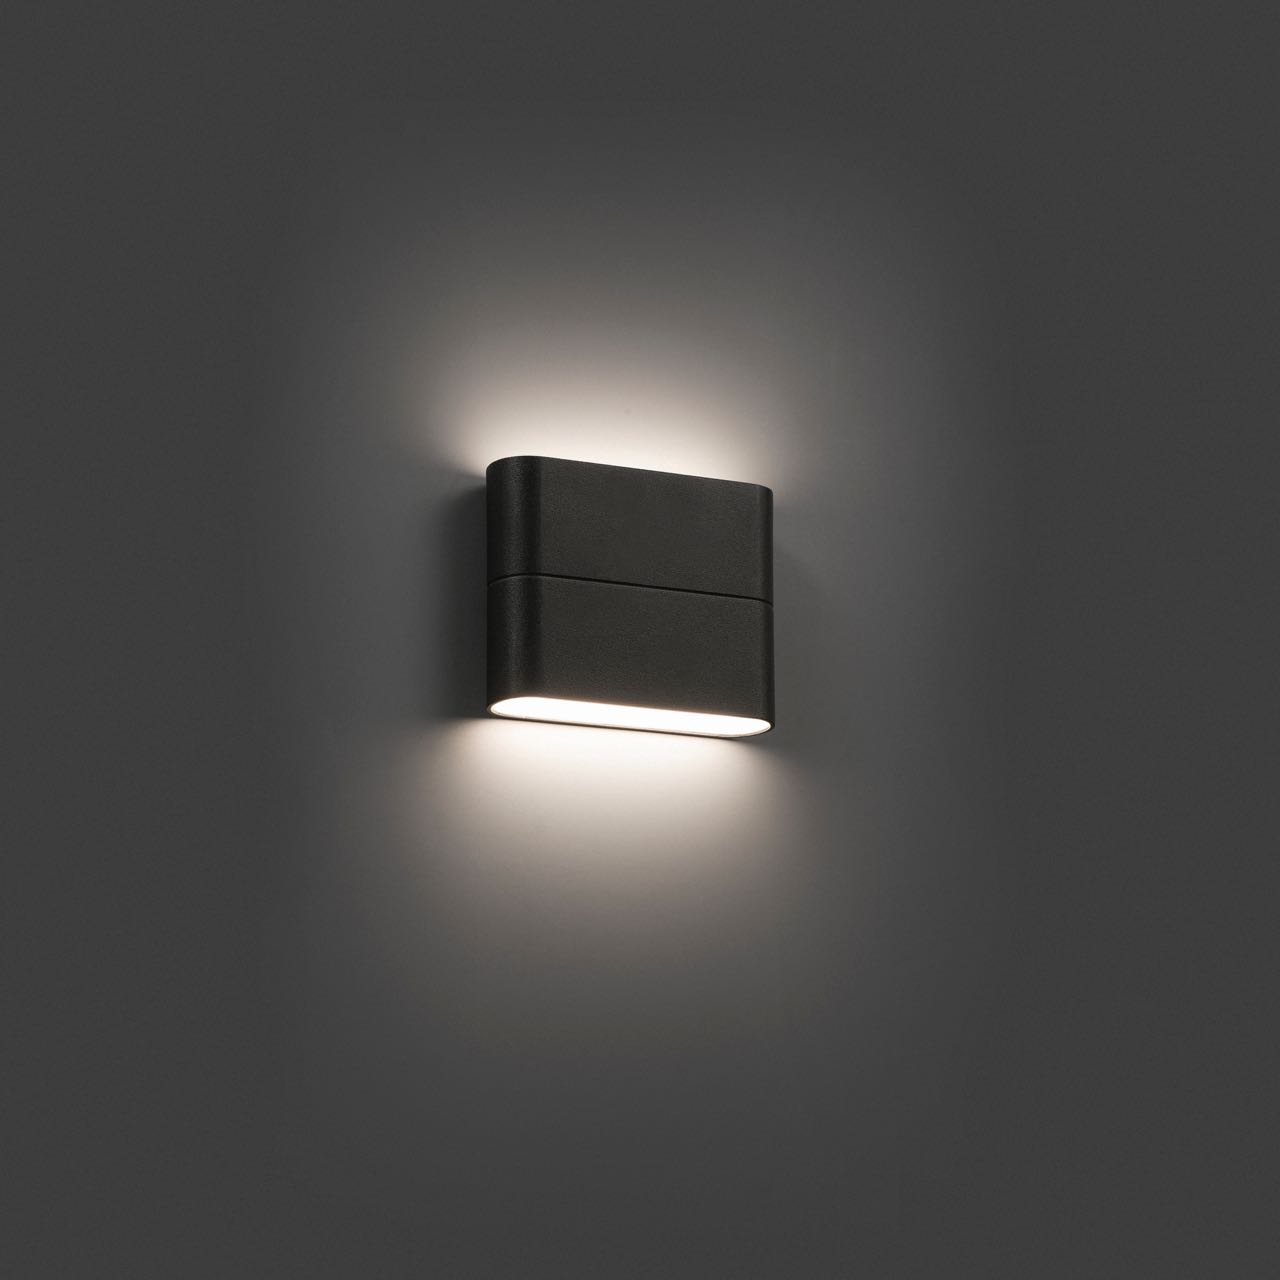 L mpara de exterior para paredes con led integrado 6w for Apliques iluminacion exterior pared